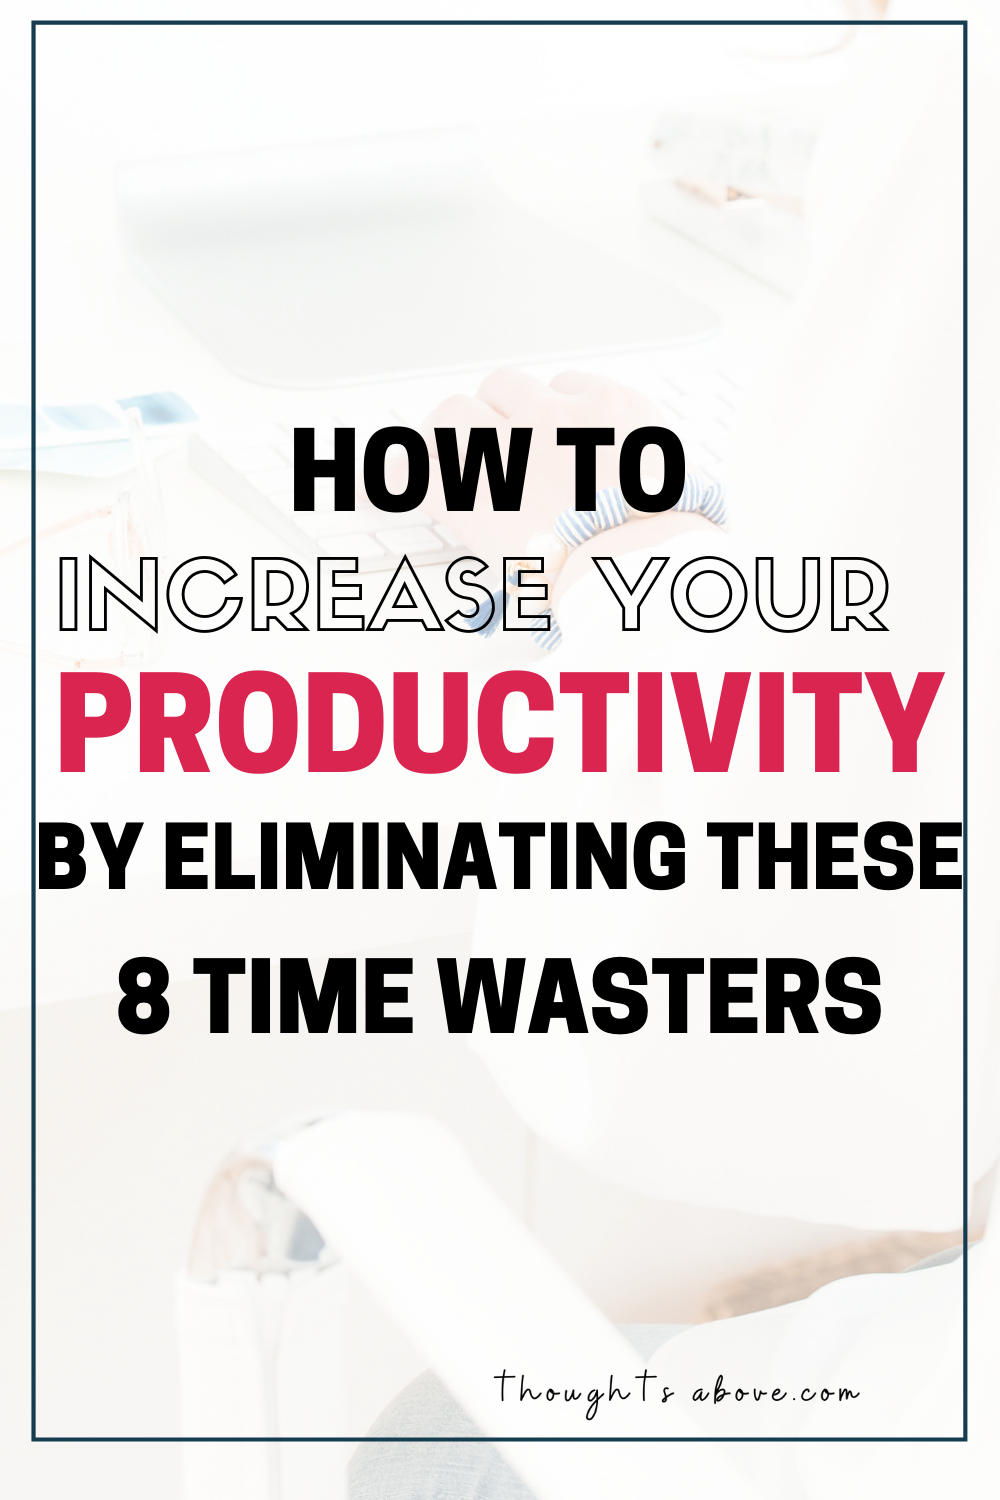 If you're struggling with time management at work And Wondering how to improve your productivity start by learning 8 things that steal your time silently. time management Tips will help you start getting things done for once. #productivity #timemanagement #personaldevelopment #personalGrowth #SelfImprovement #SelfHelp #procrastination #Success #GoalSetting #Motivation #millennial #productive #productivitytips #motivation #procrastination #GoalSetting #careertips